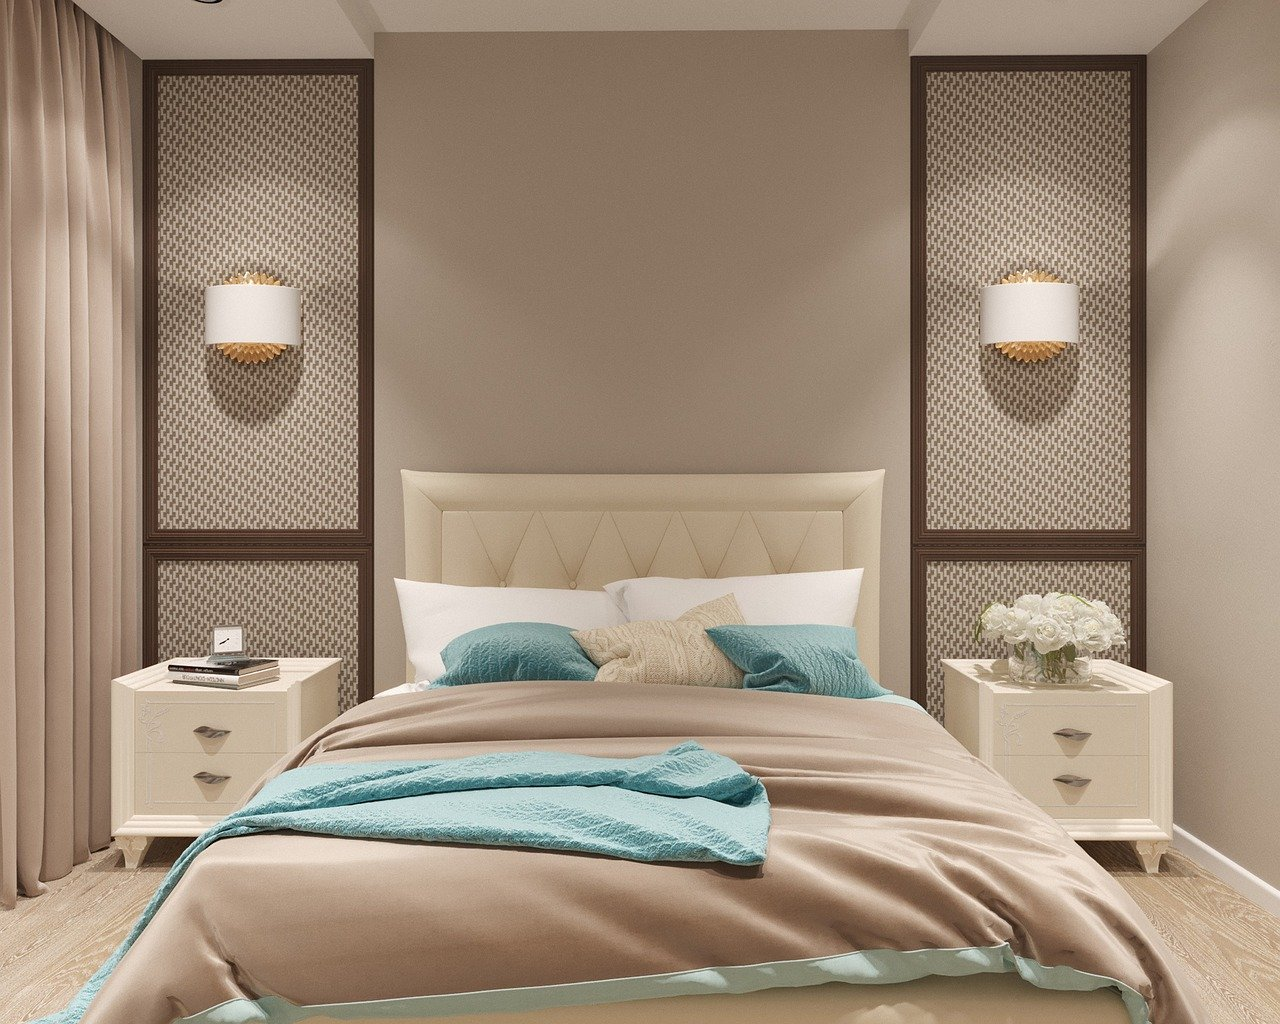 Bedroom pastel colors